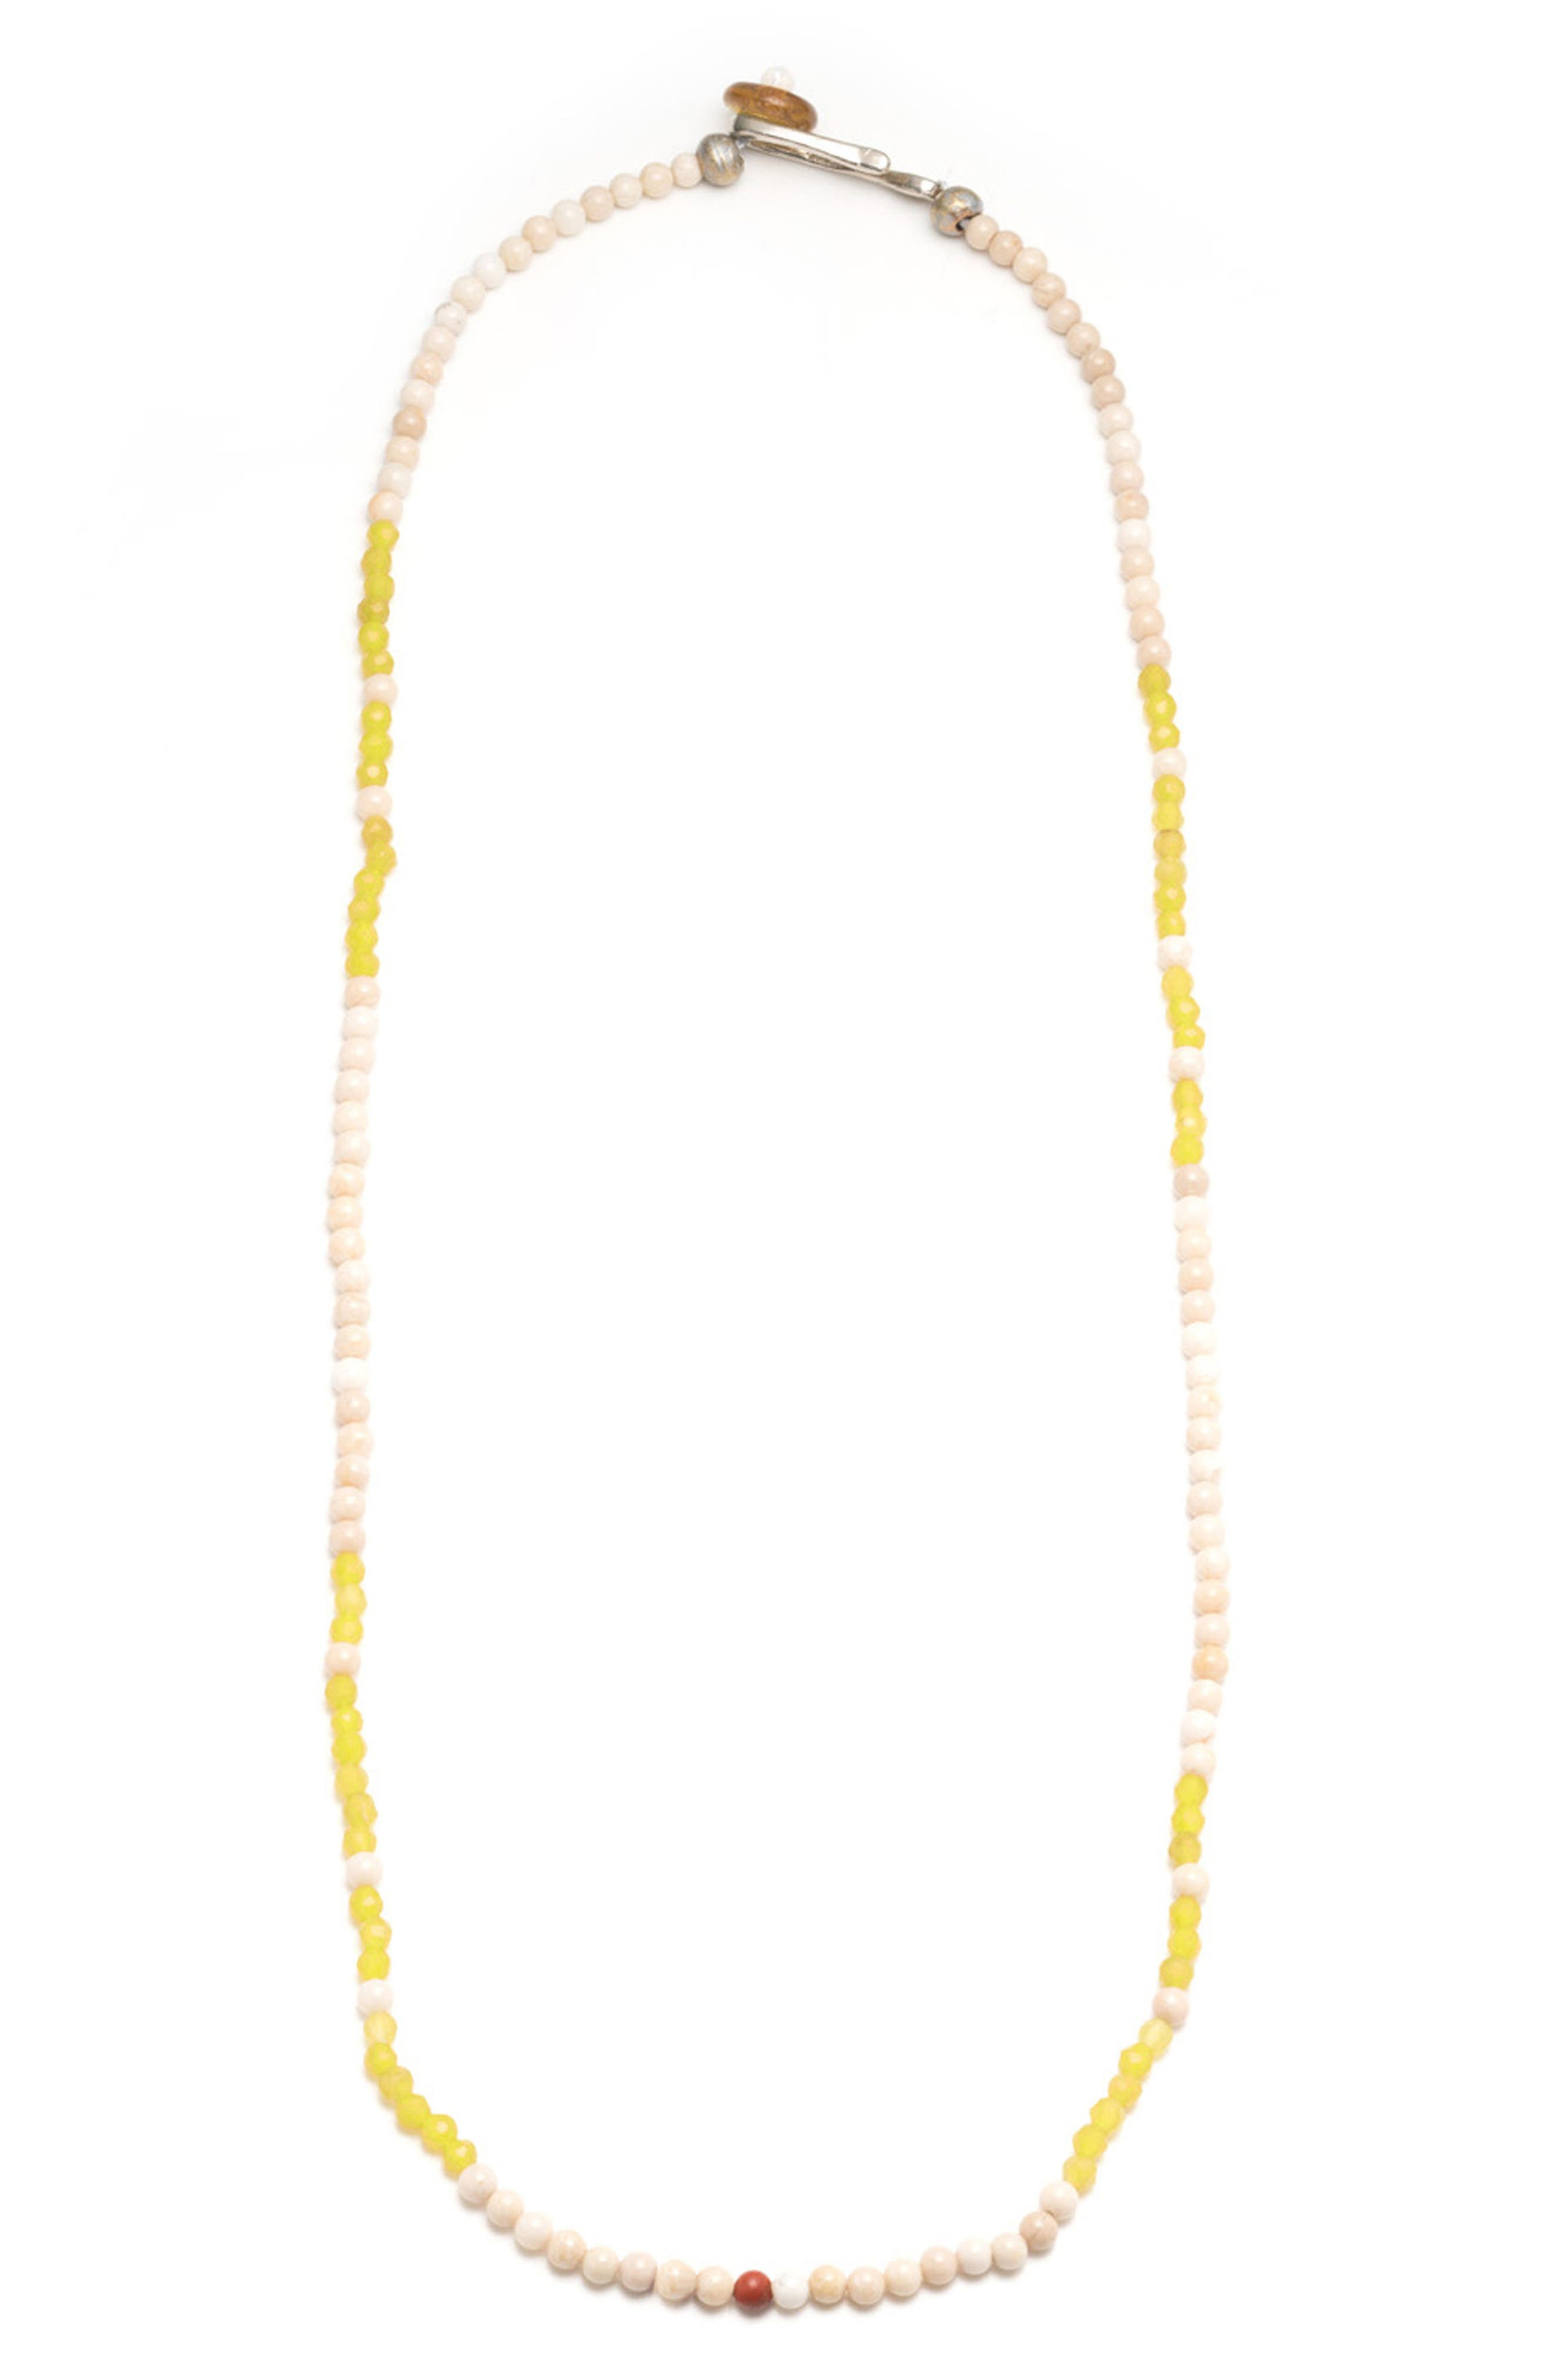 Luck Morse Necklace,                             Main thumbnail 1, color,                             Yellow/ White